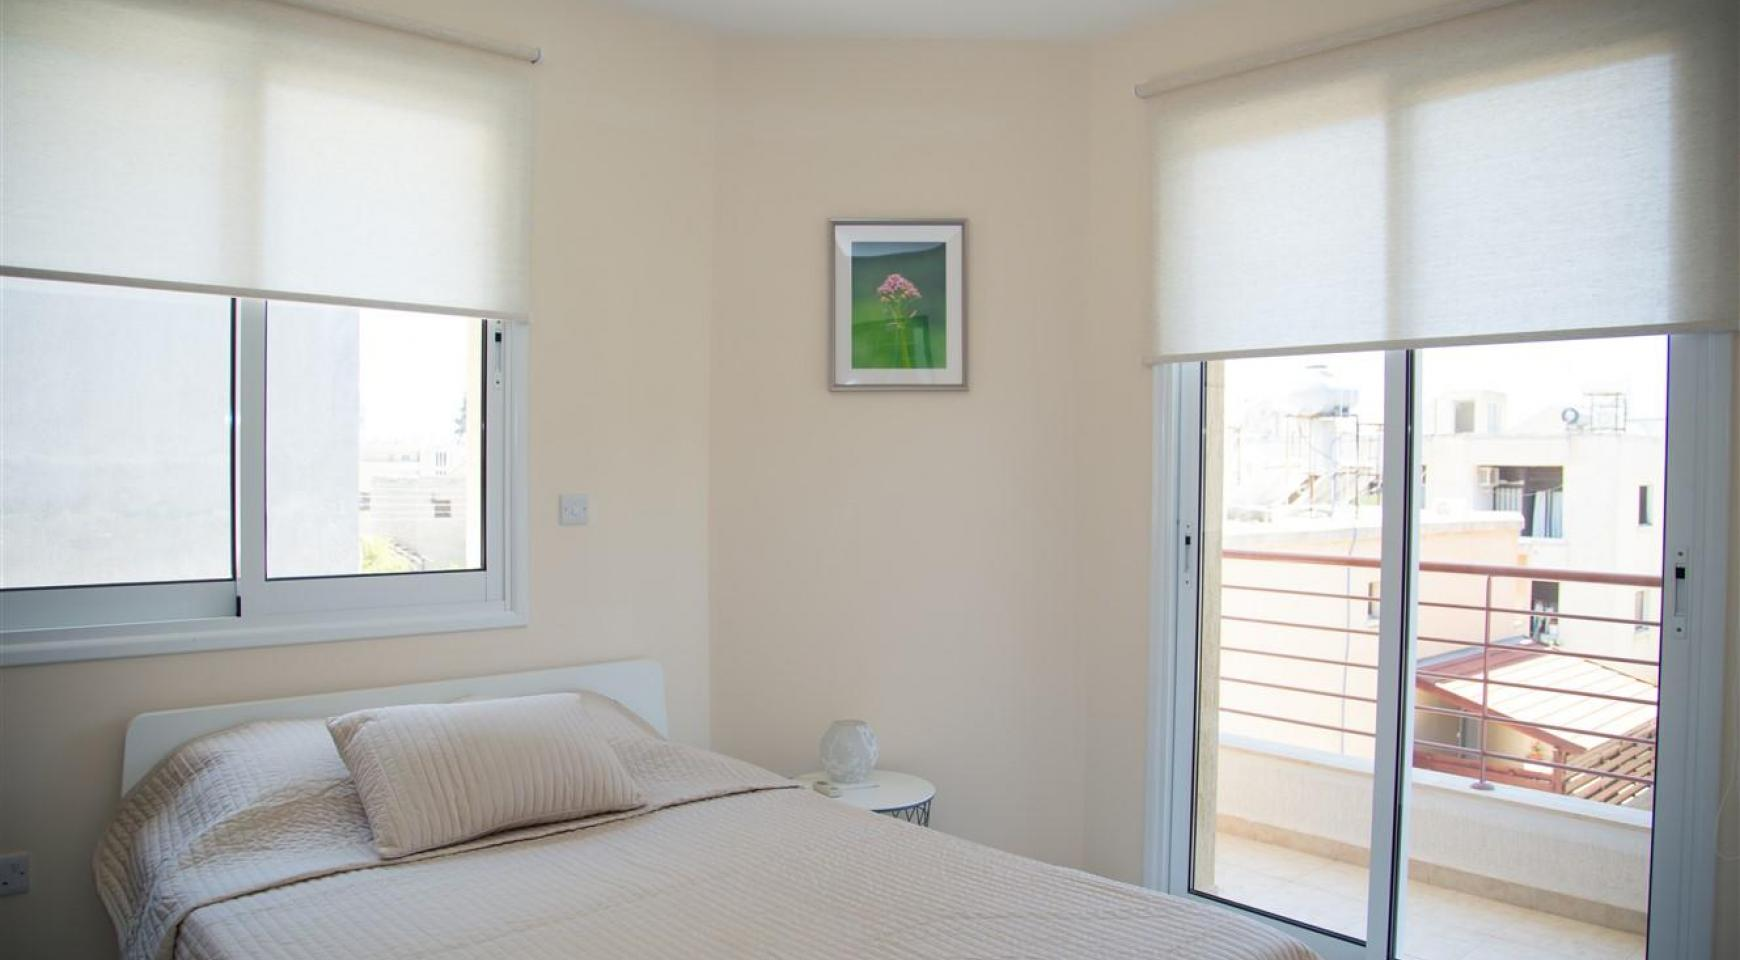 Luxury One Bedroom Apartment Frida 103 in the Tourist Area - 7